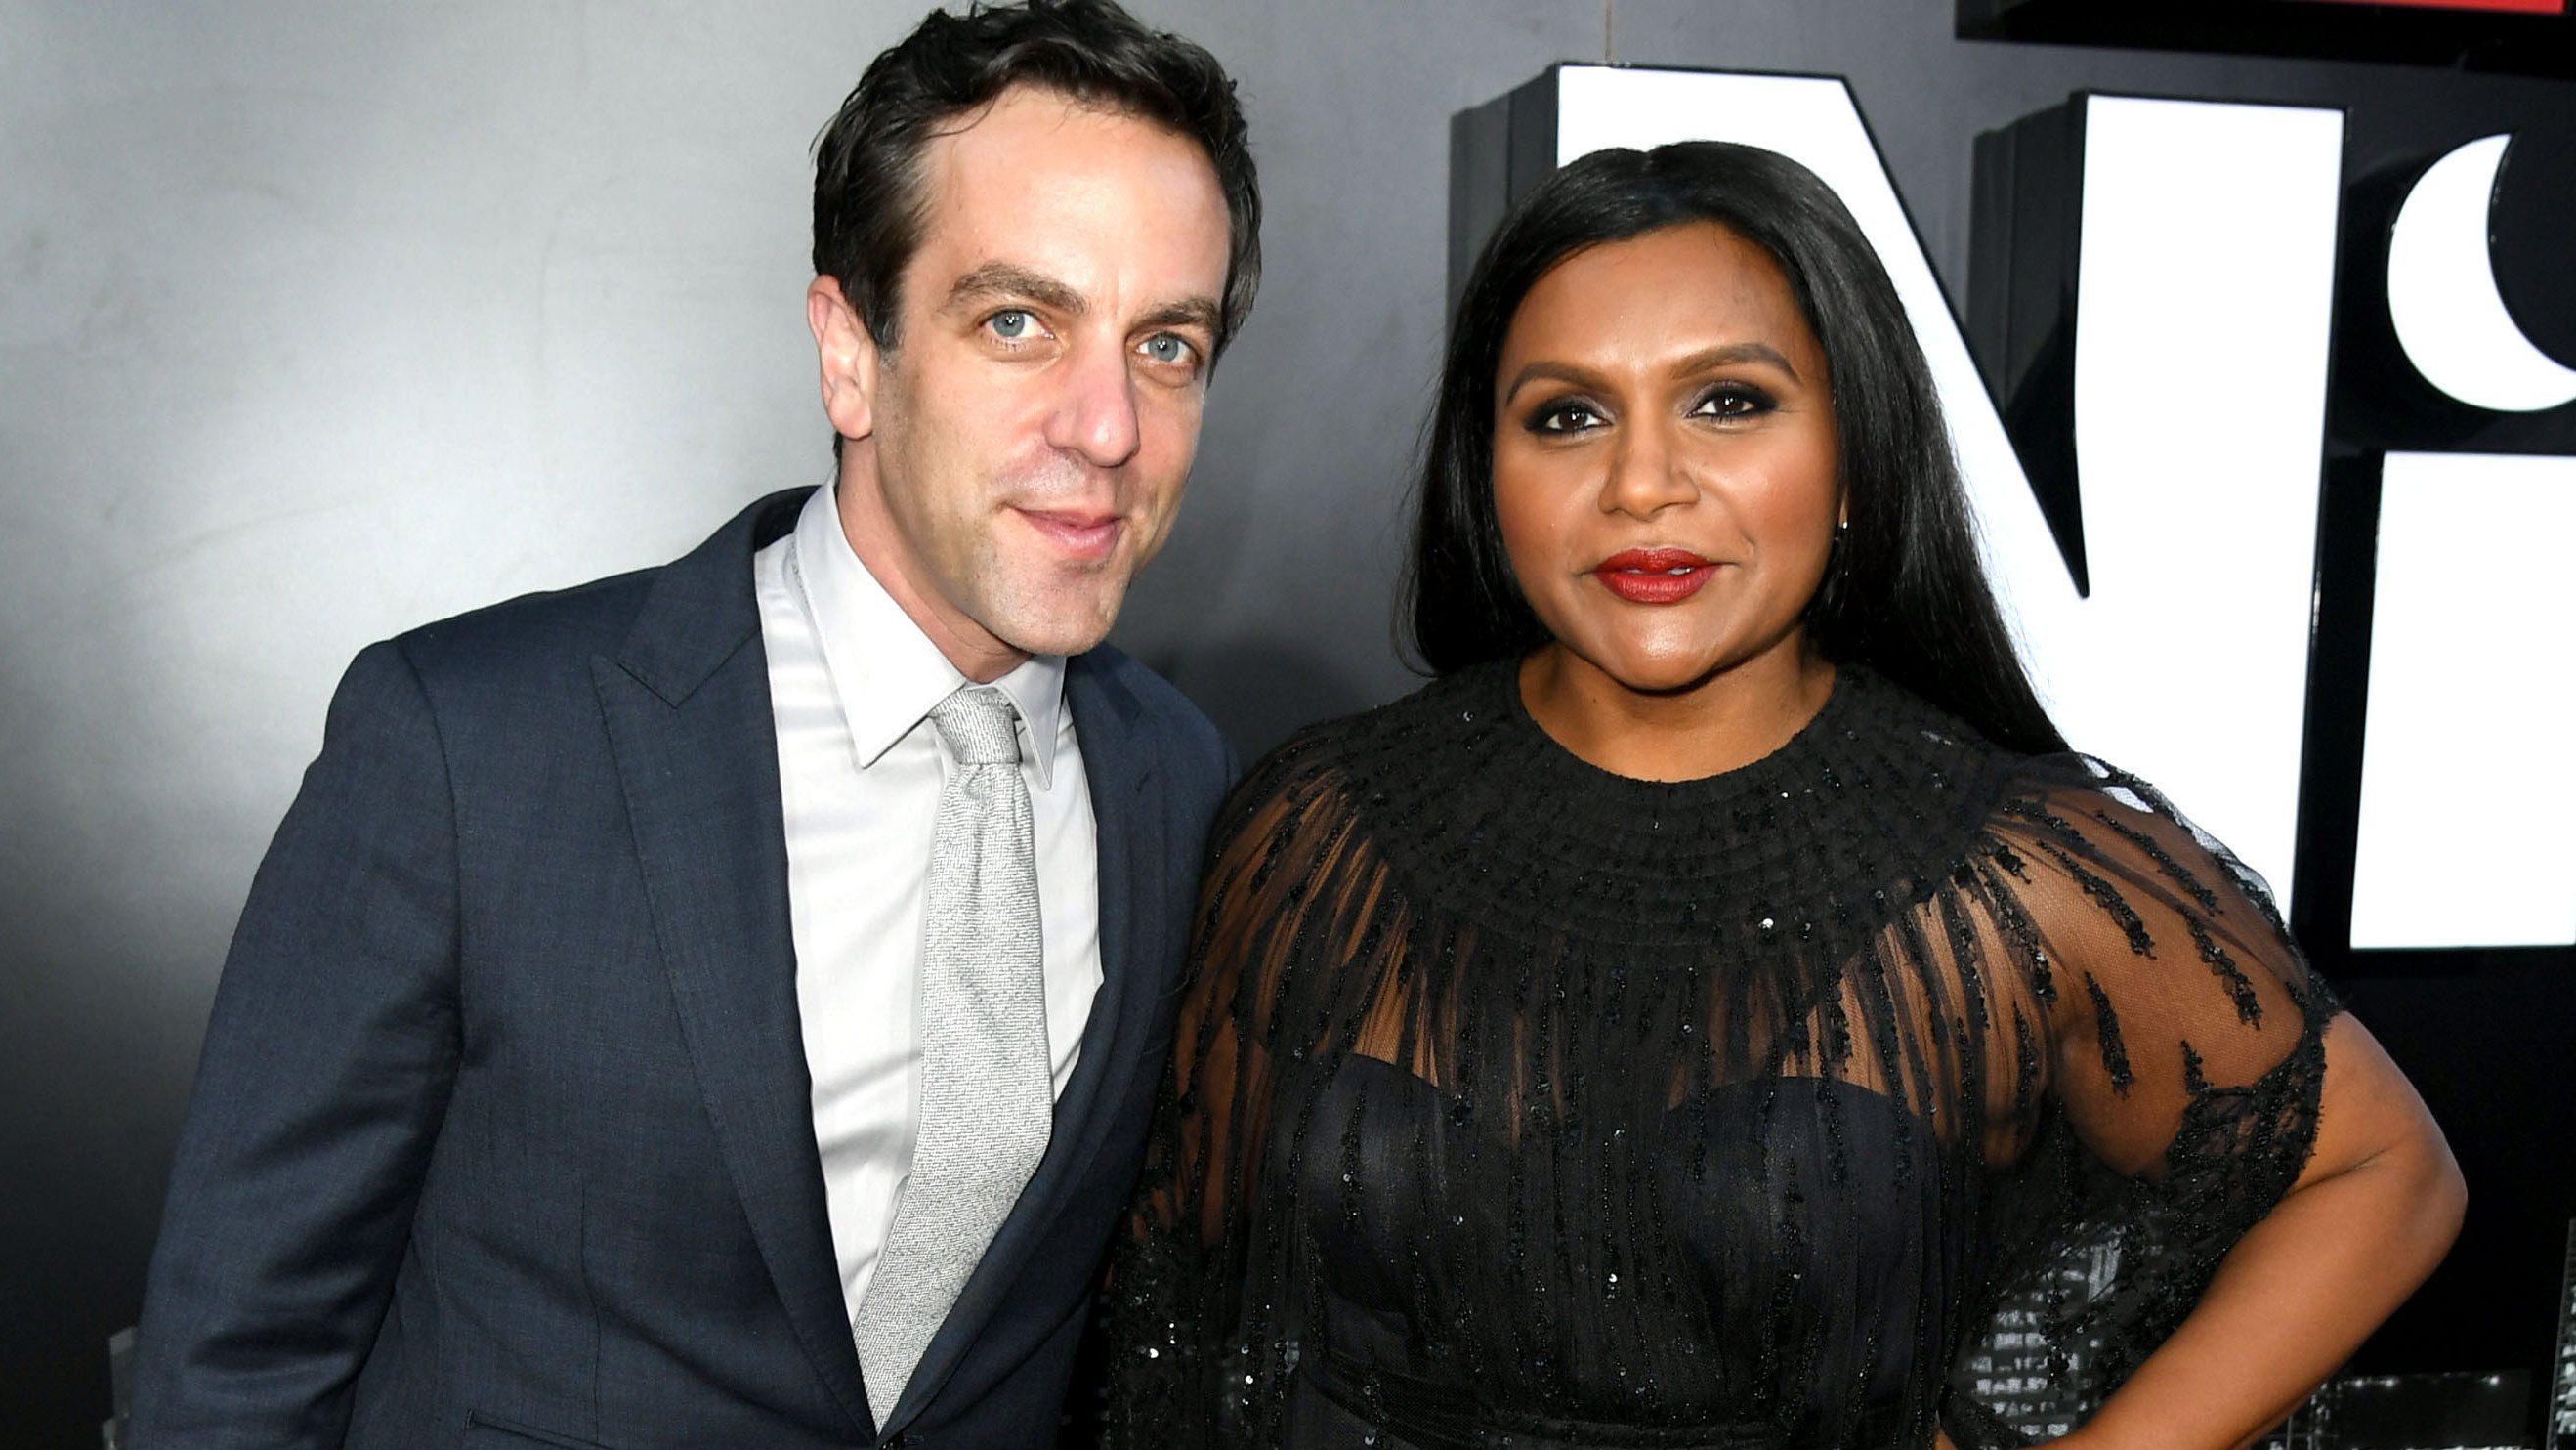 Mindy Kaling celebrates 40th birthday with B.J. Novak